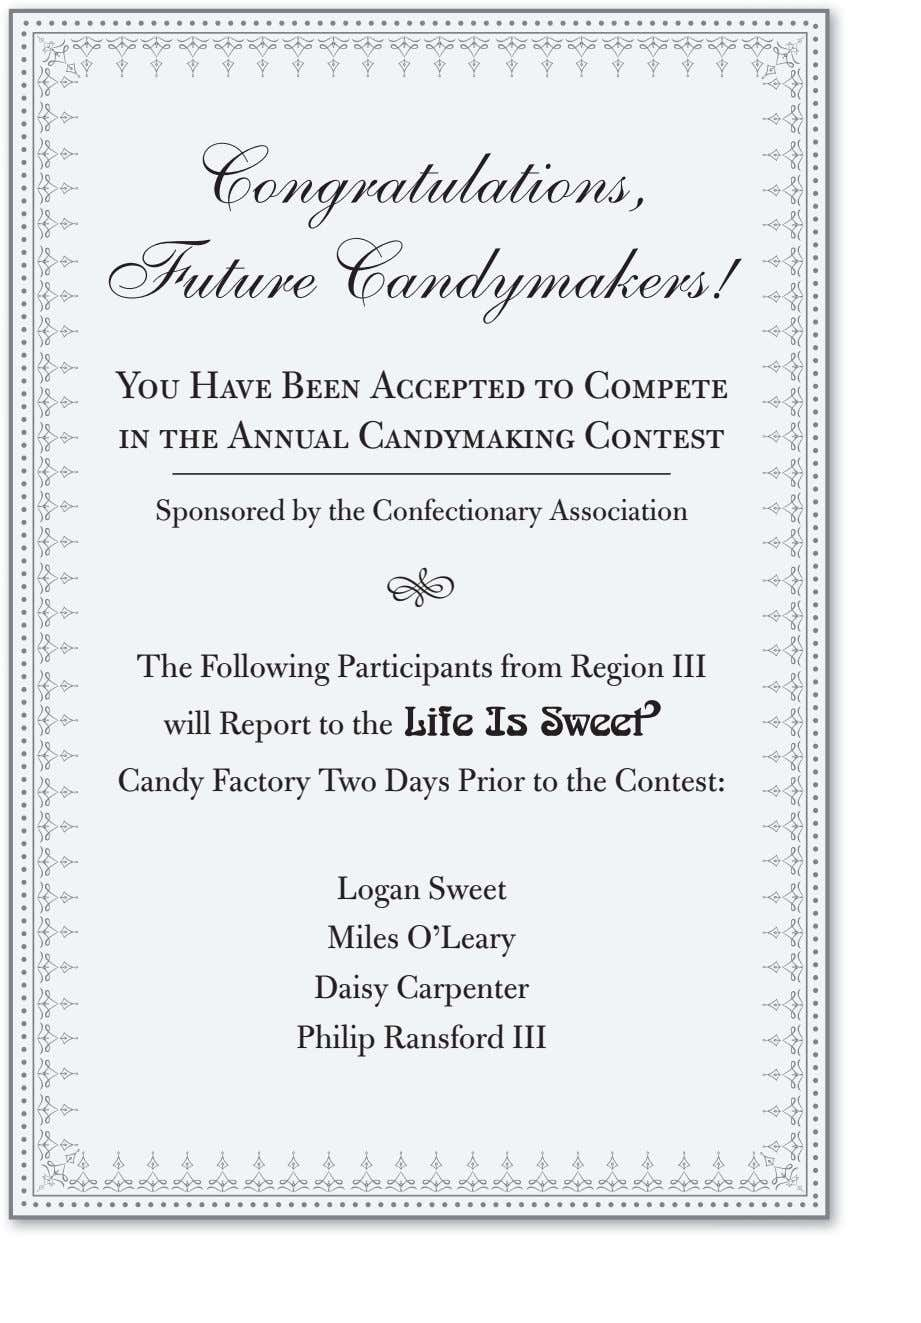 Congratulations, Future Candymakers! You Have Been Accepted to Compete in the Annual Candymaking Contest Sponsored